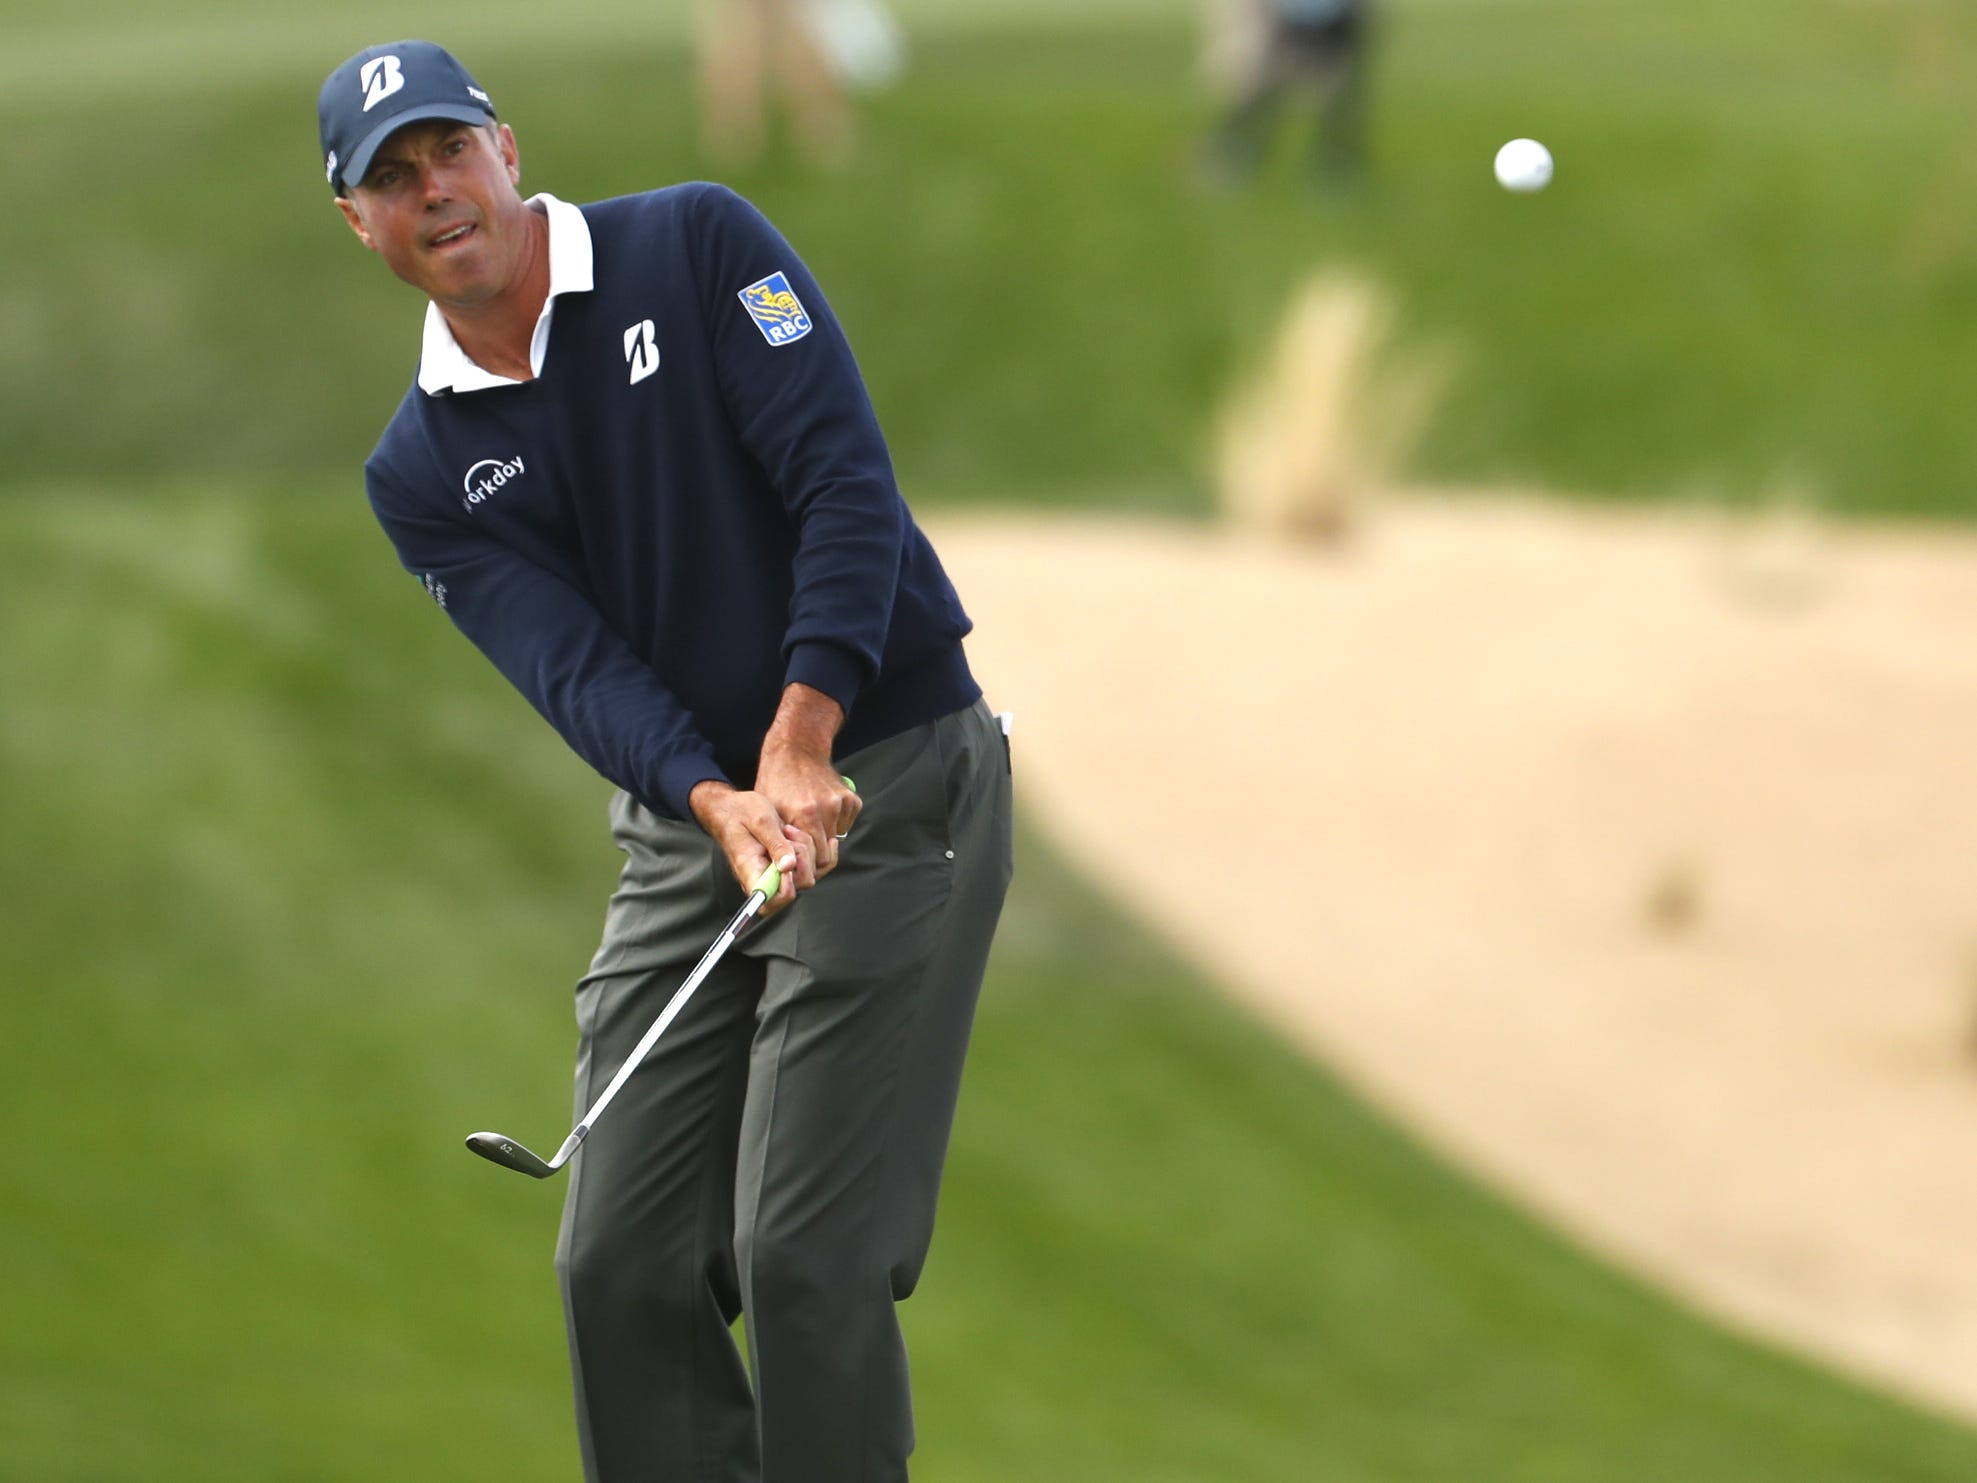 Matt Kuchar hits a chip shot on the 14th hole during the third round of the Waste Management Phoenix Open at TPC Scottsdale in Scottsdale, Ariz. on February 2, 2019.